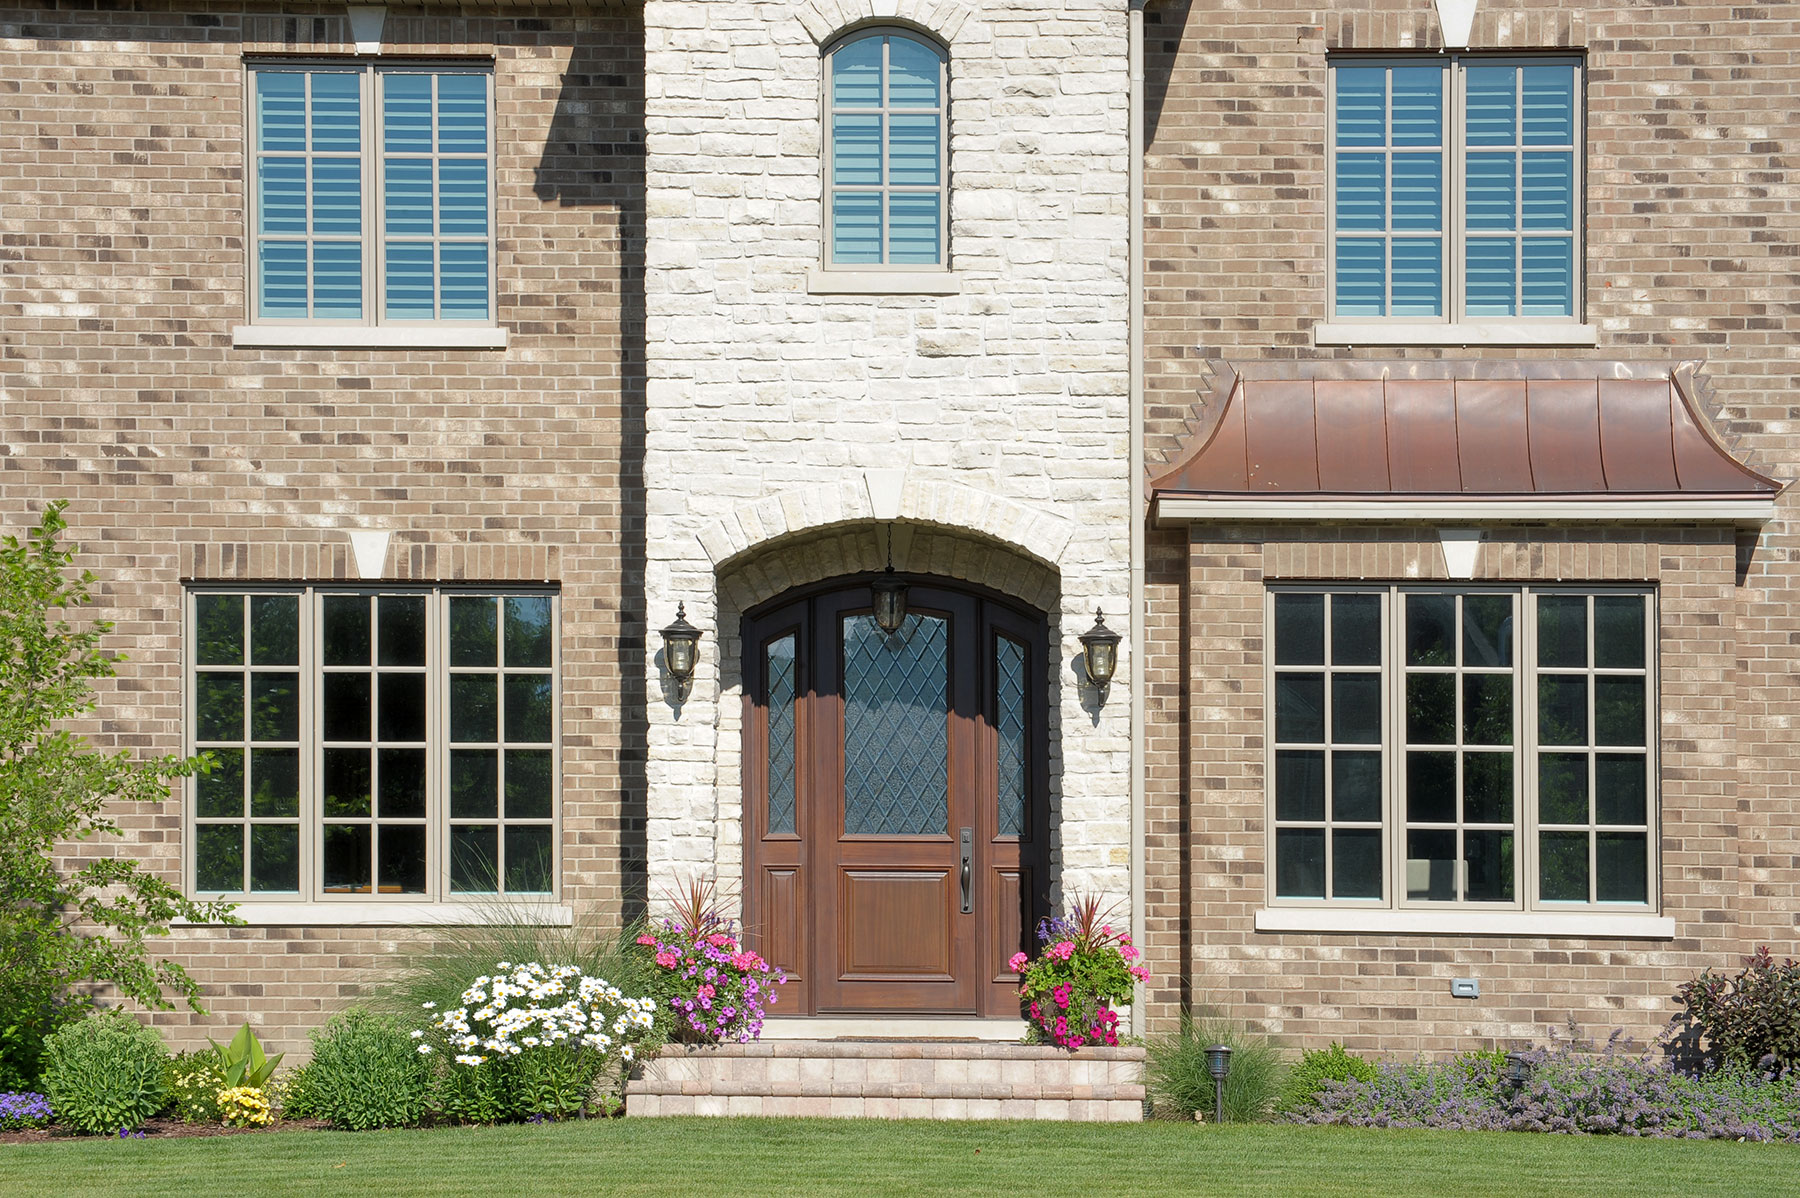 Solid Wood Front Entry Doors in-Stock | front entry door, mahogany wood, dark finish DB-552DG 2SL - Glenview Doors - Custom Doors in Chicago